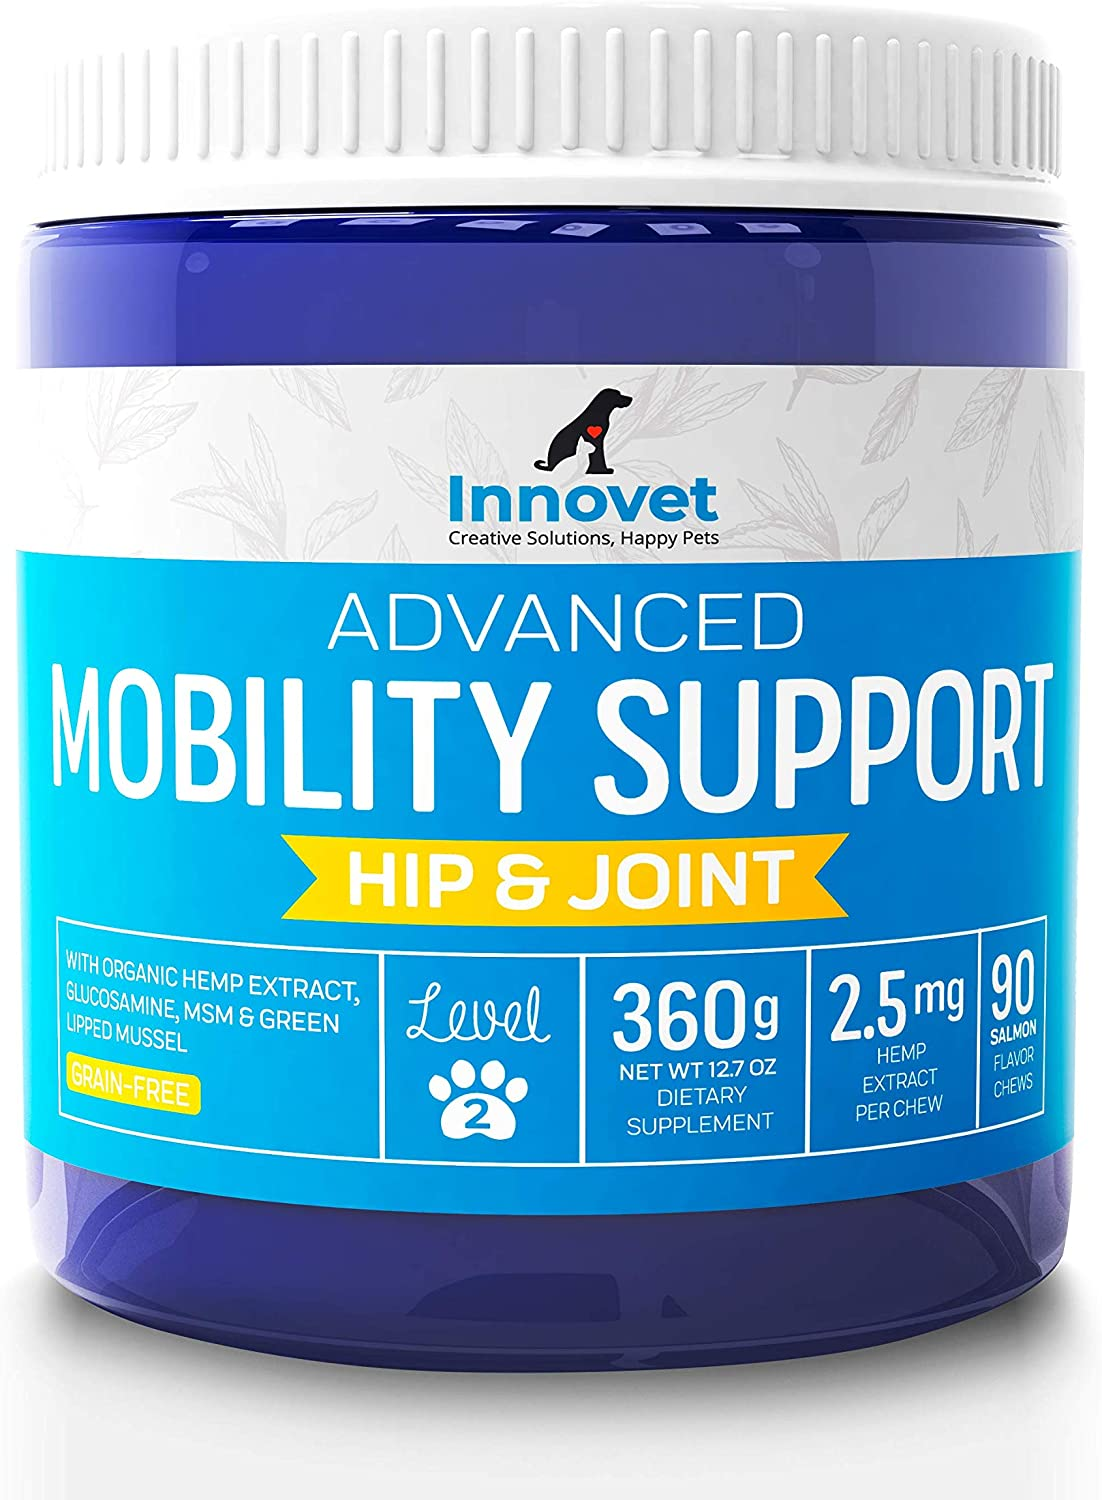 INNOVETPET Advanced Mobility Chews For Dogs – (90 Chews) Dog Treats, Hip & Joint Supplement With MSM, Green Lipped Mussel, Vitamin C & E, Glucosamine for Dogs, Organic Terpene Extract Boosts Immunity